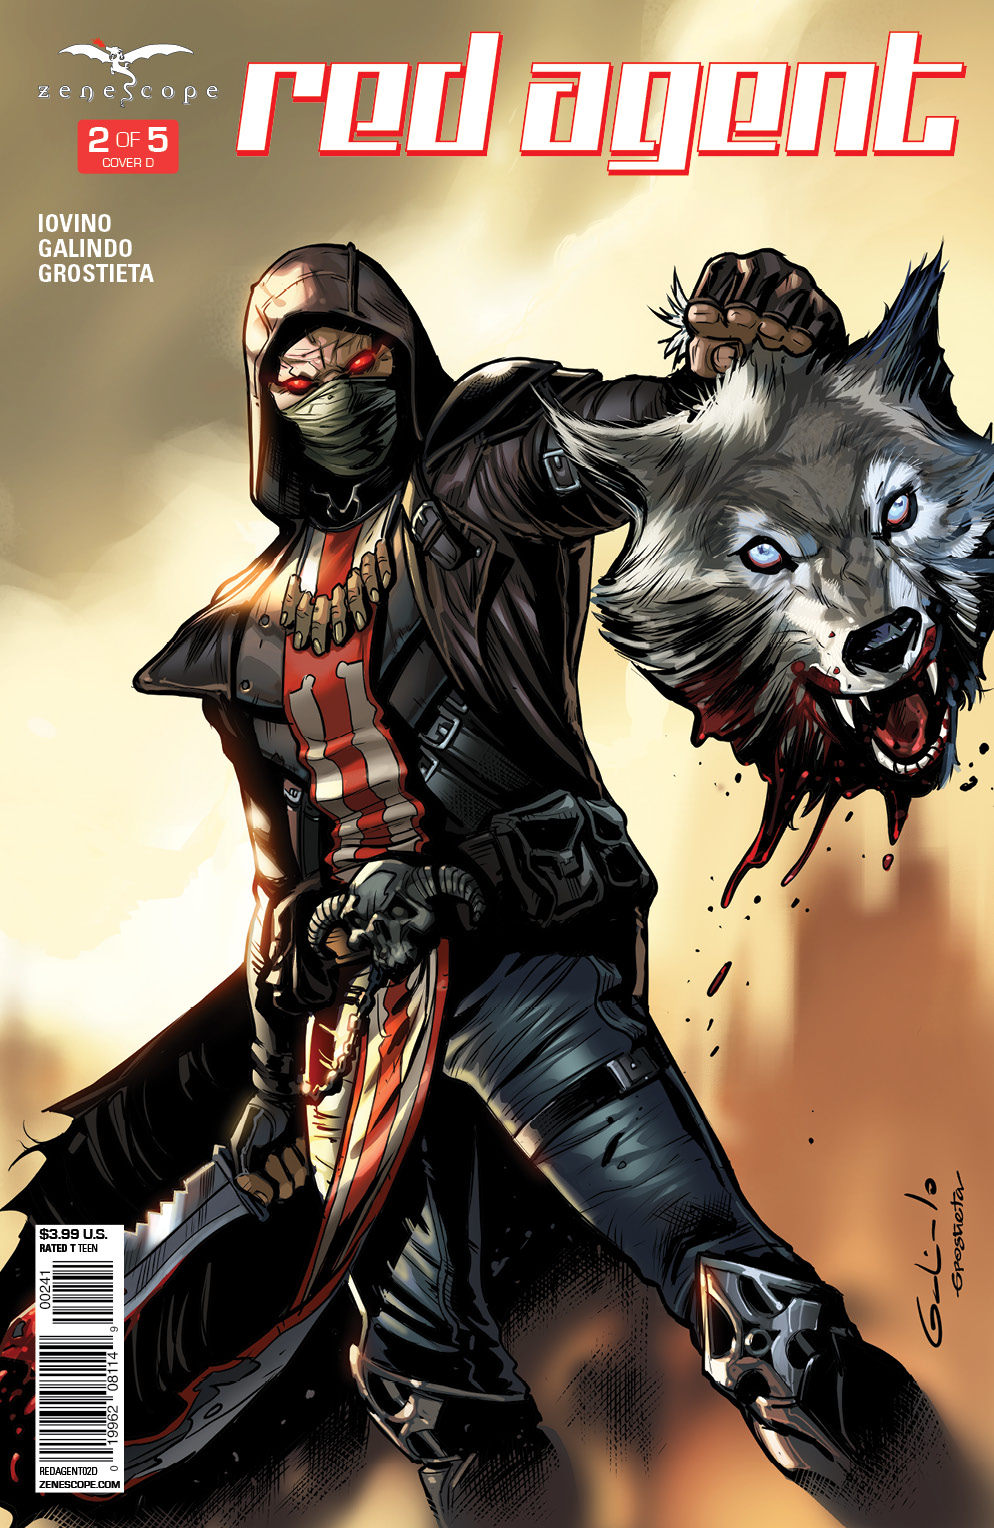 Cover D by Diego Galindo and Grostieta